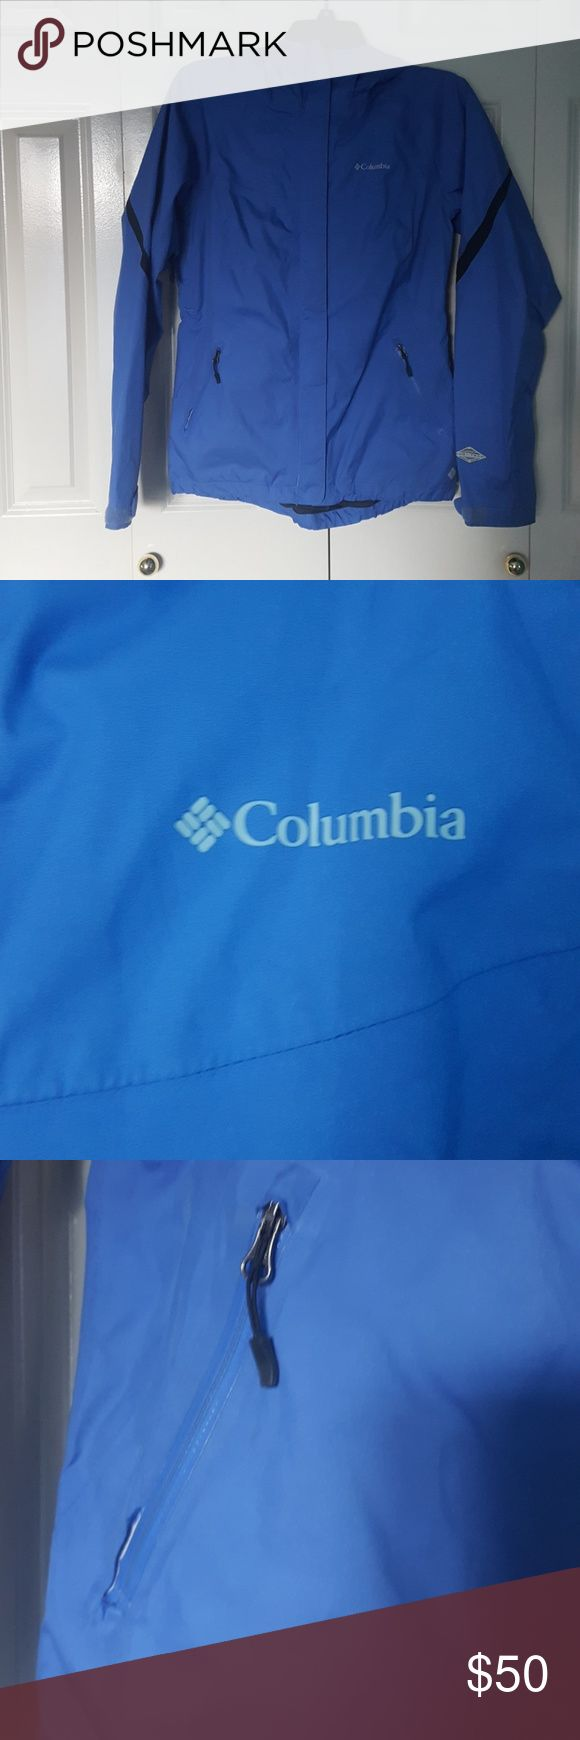 Blue Columbia Rain Jacket In great condition periwinkle blue Columbia Omni-tech rain proof breathable rain jacket. This was perfect for all the rainy Seattle weather we get up here but unfortunatly I grew out of it ☹ Has a feminine cut to it that is very flattering. Other than 2 very small, barely noticeable dirt stains (that can probably be removed with some cleaner, shown in last photo) it's in great used condition! 2 zipper pockets, armpits unzip, sleeves have velco to adjust. Feel free…